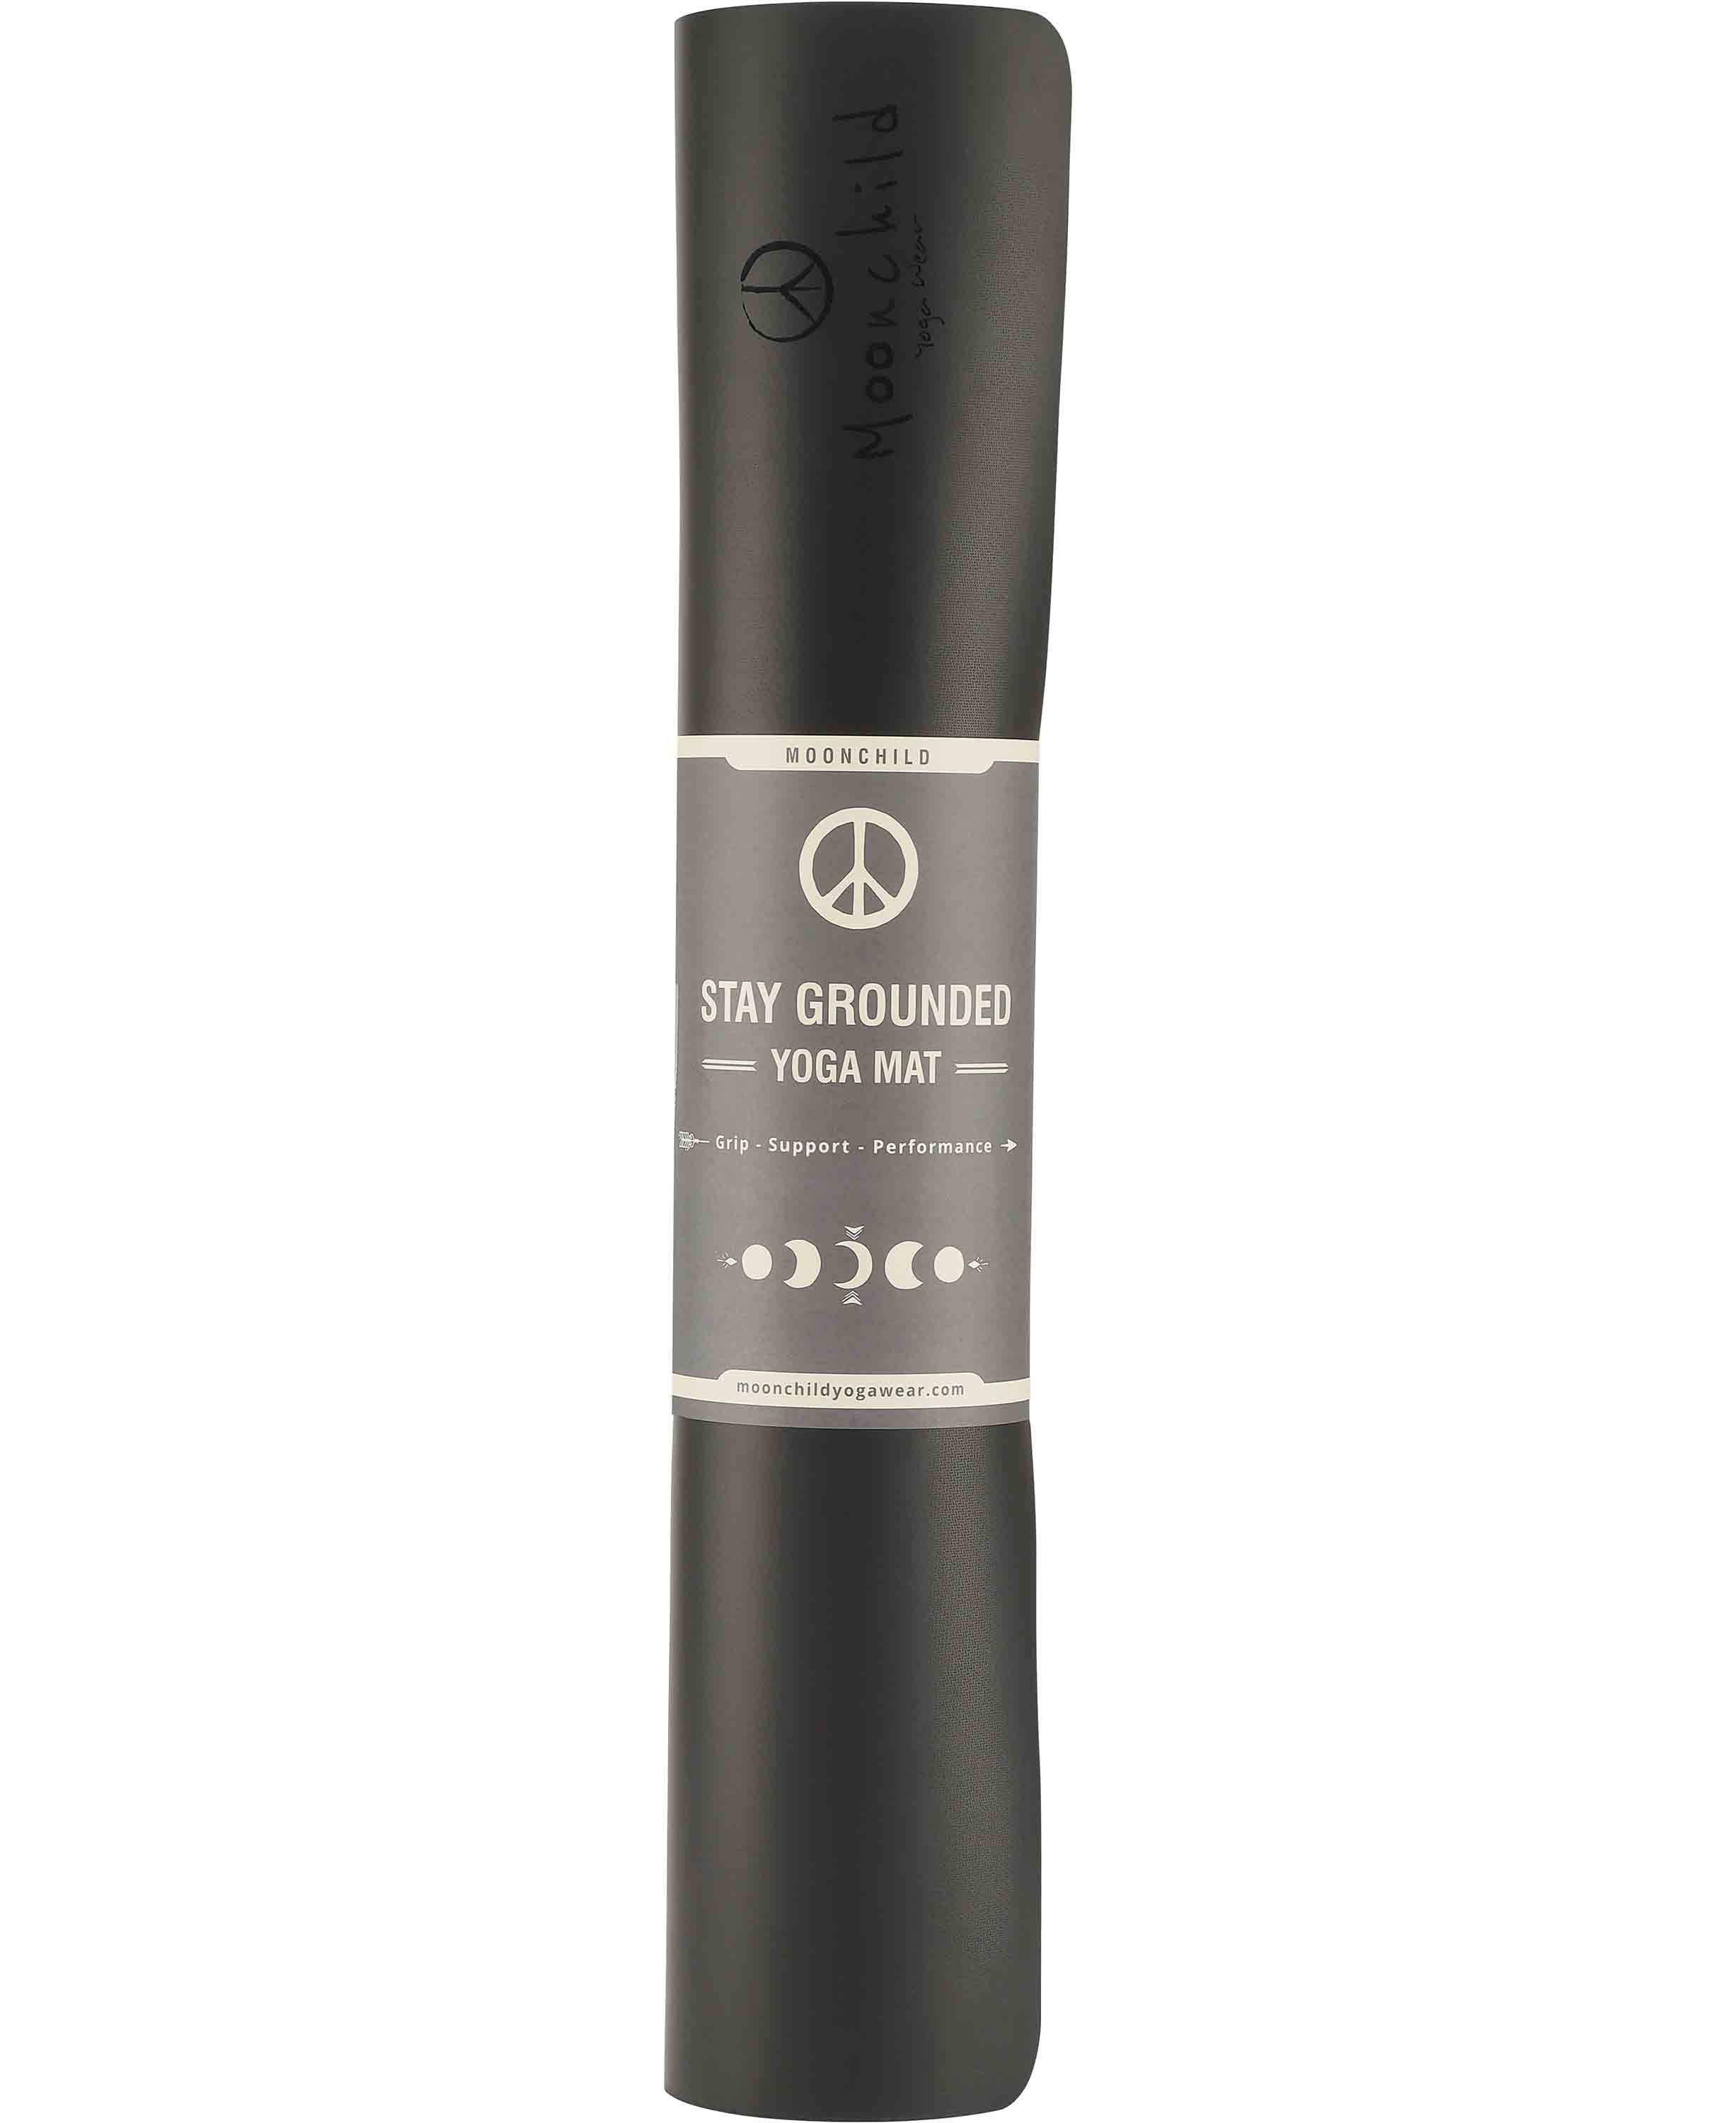 Stay Grounded Yoga Mat